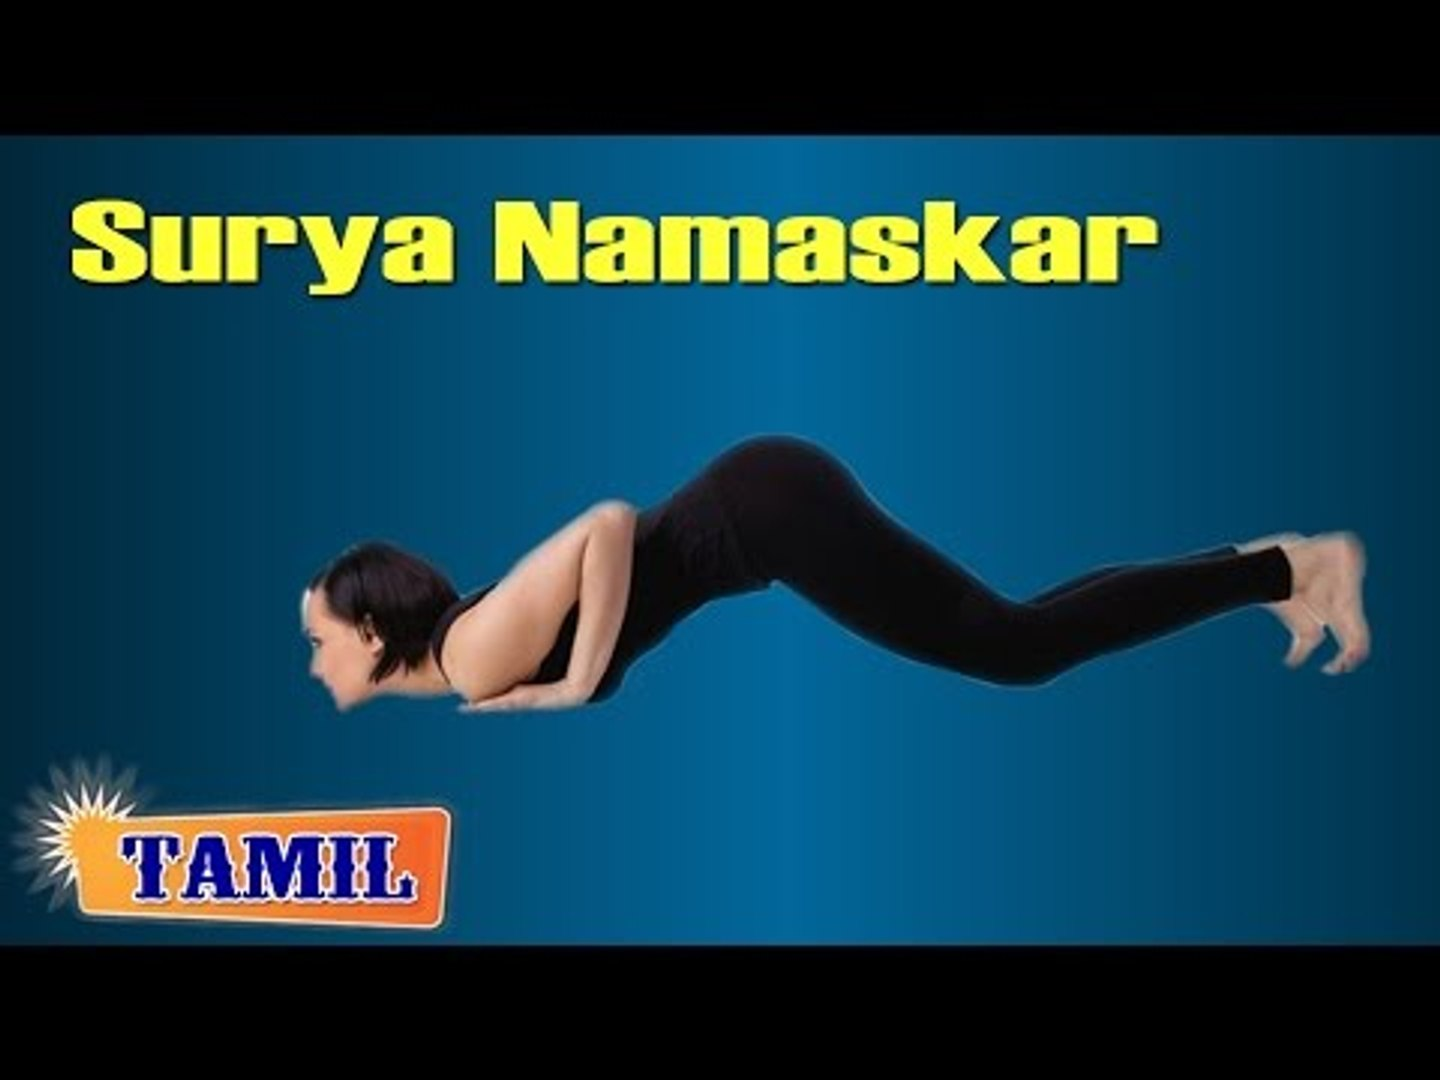 Surya Namaskar For Diabetes Exercise To Lose Weight Treatment Tips Cure In Tamil Video Dailymotion